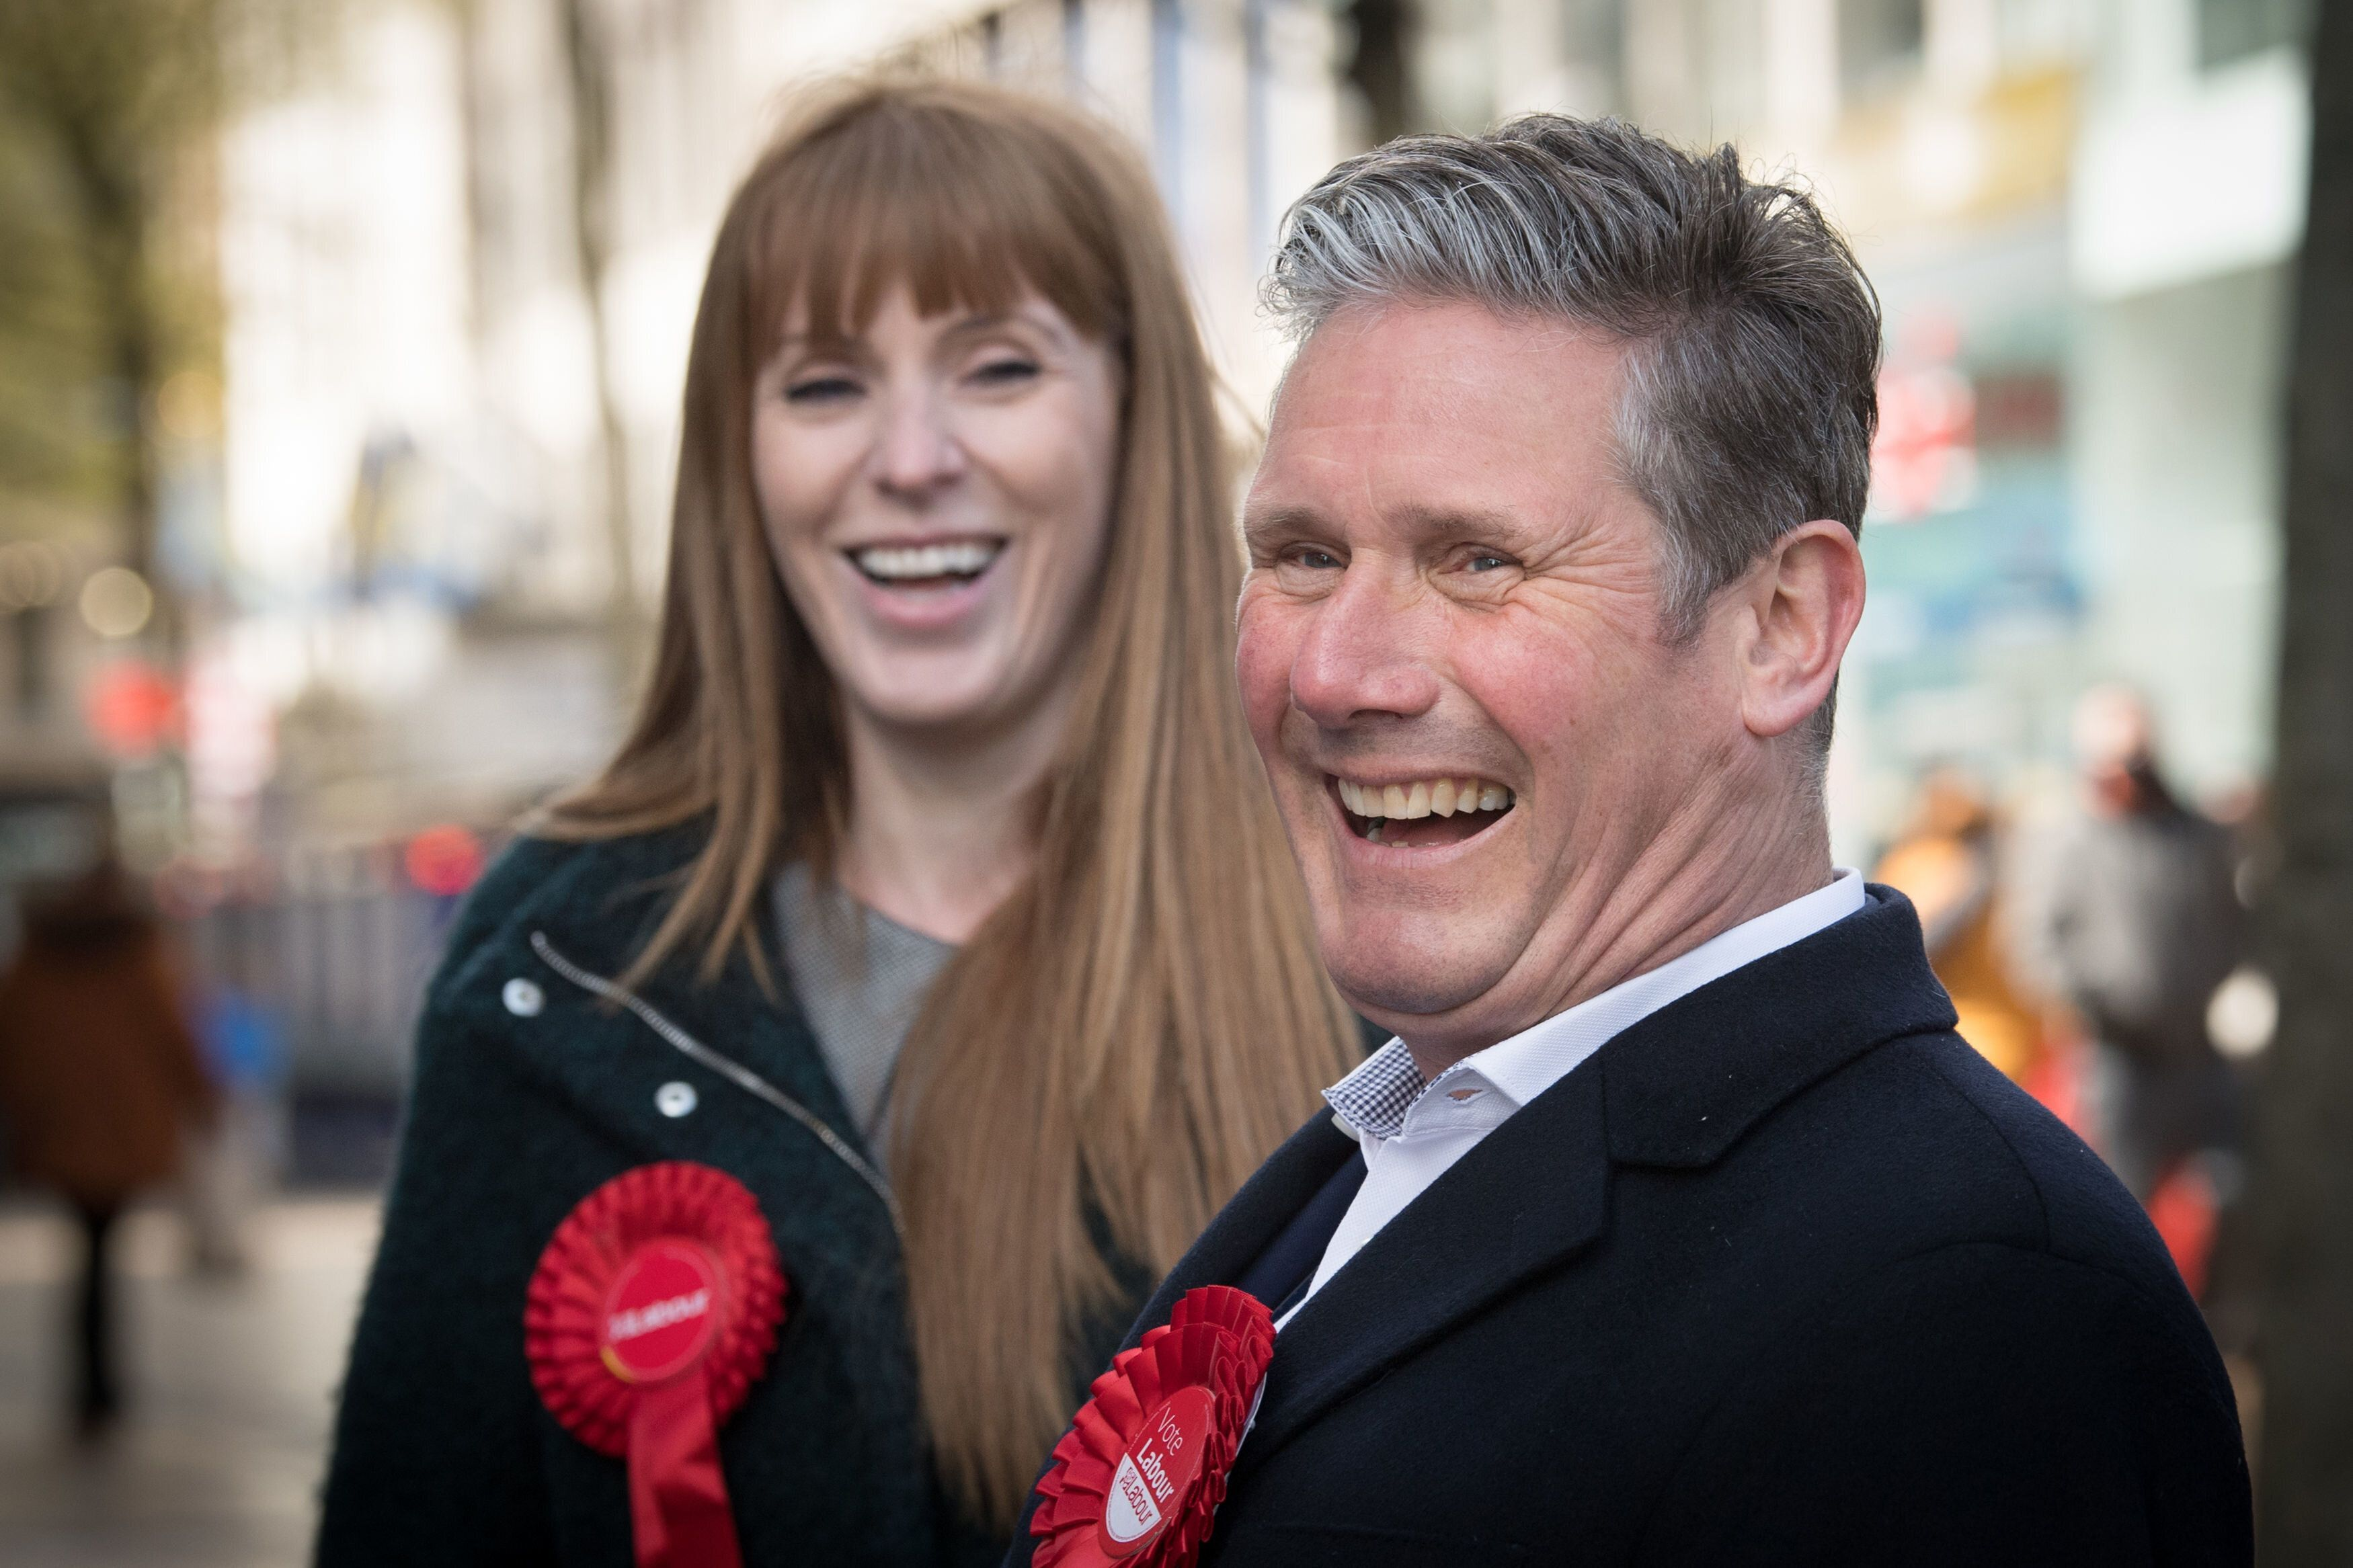 'She Was Fuming': How Keir Starmer And Angela Rayner Stepped Back From The Brink